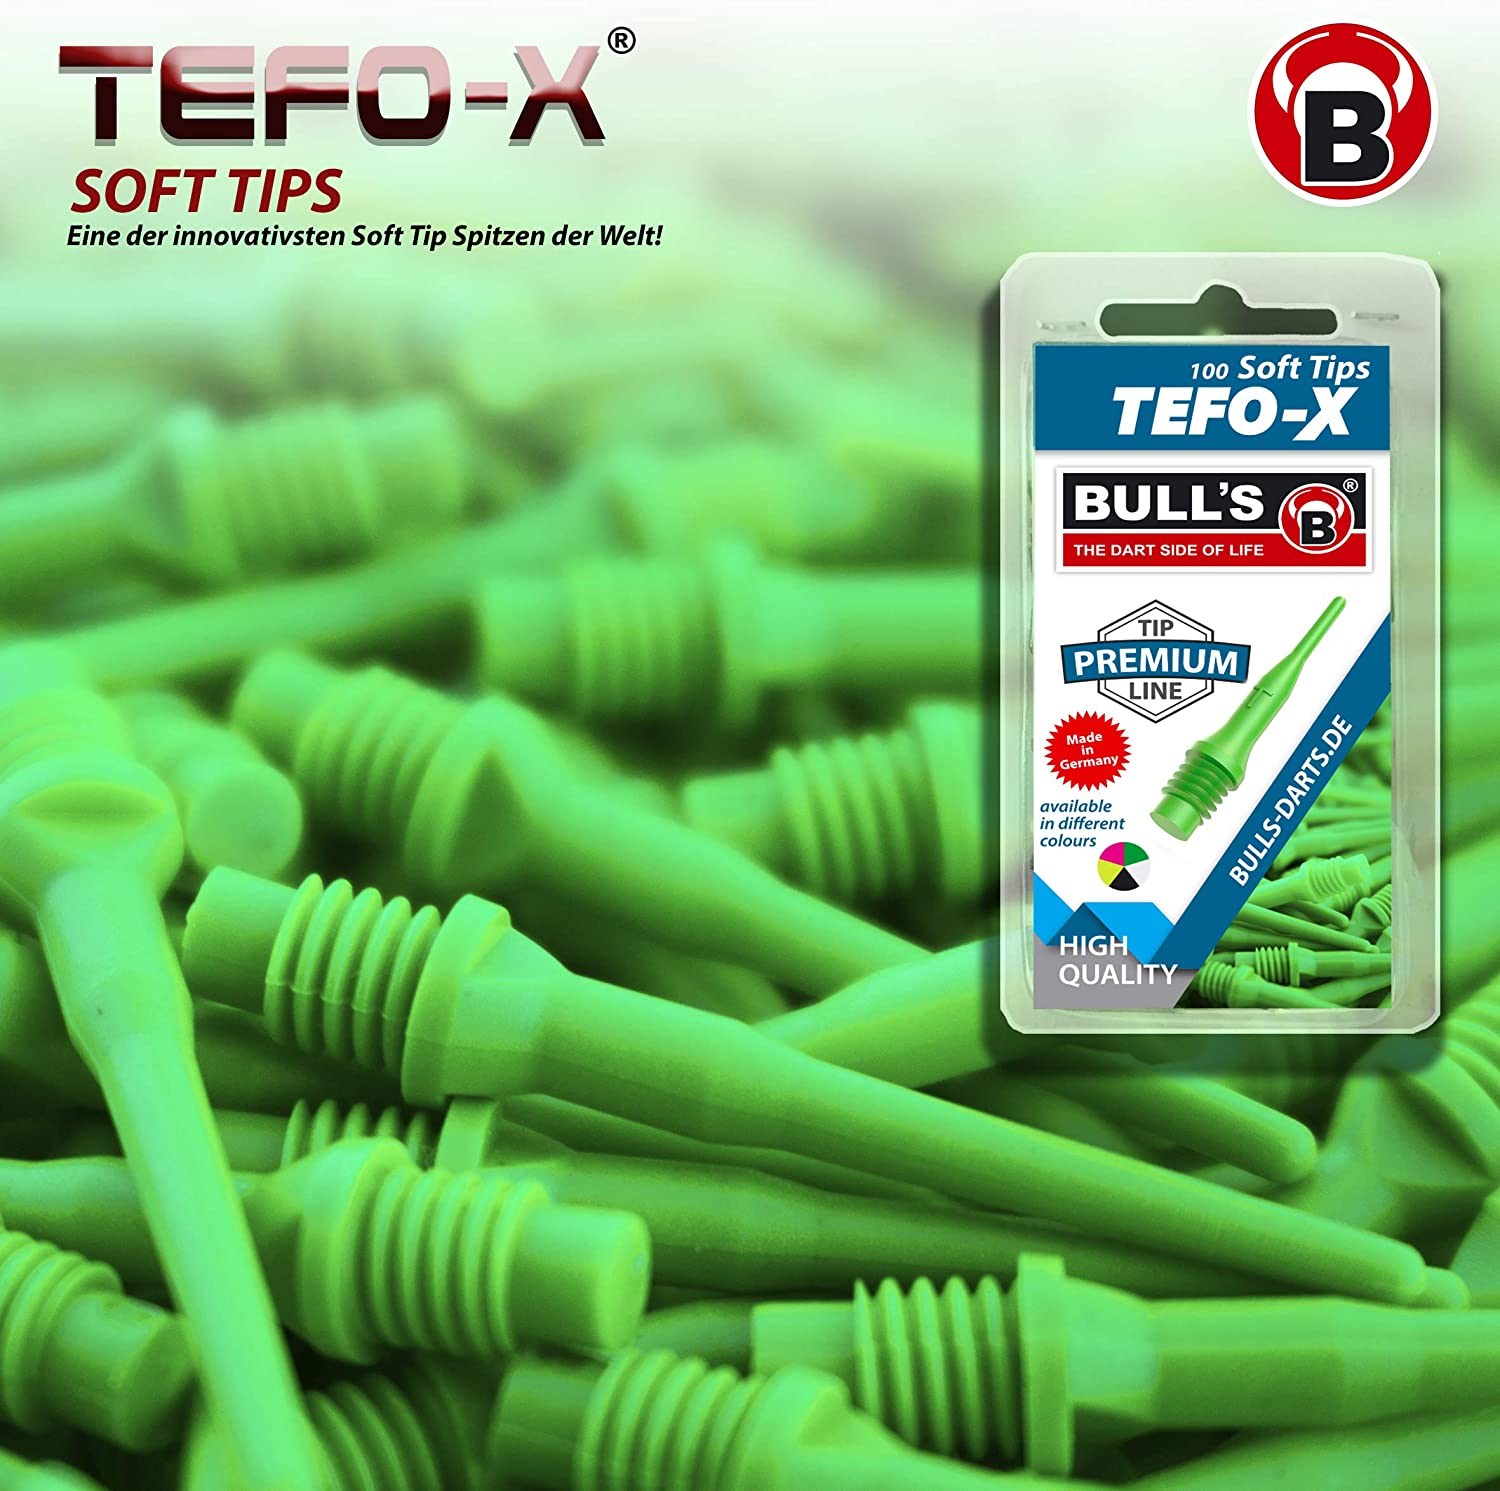 Bulls apos;s x 2BA Soft Tips Type: Tefo Long Pack of 100